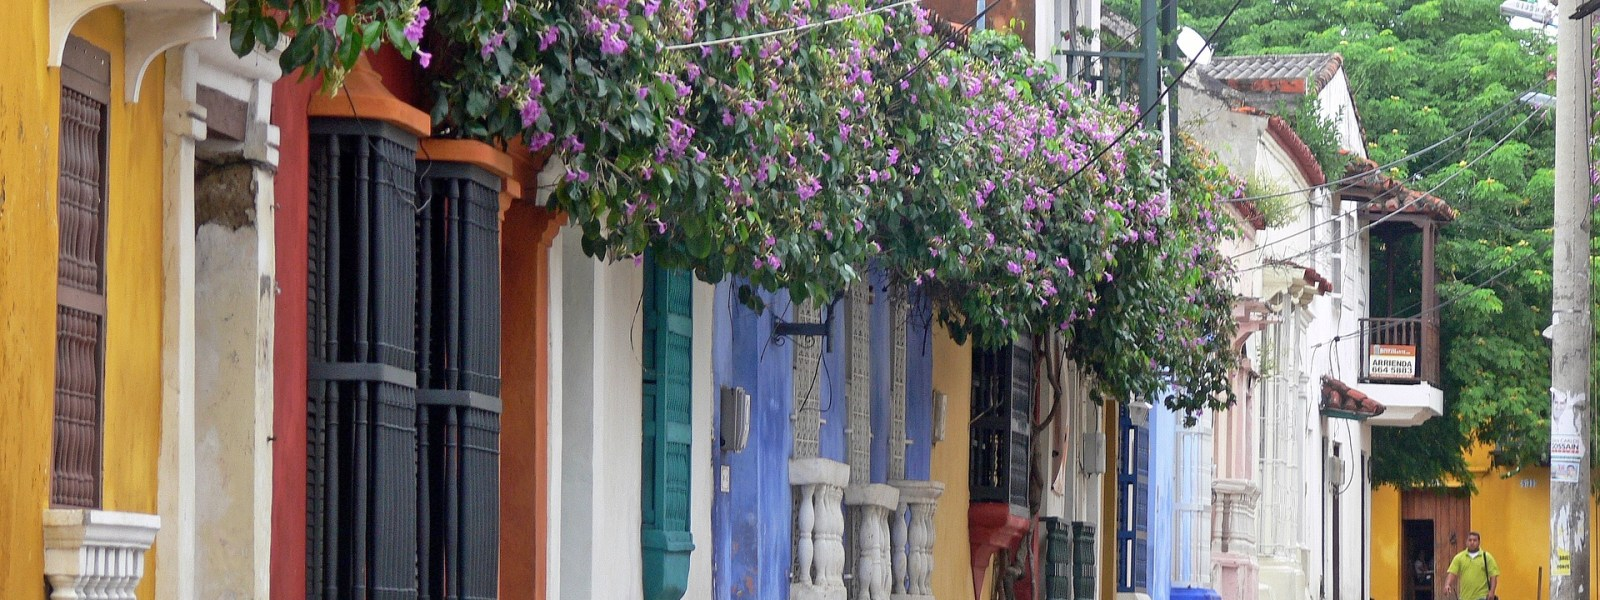 Budget tips for Cartagena